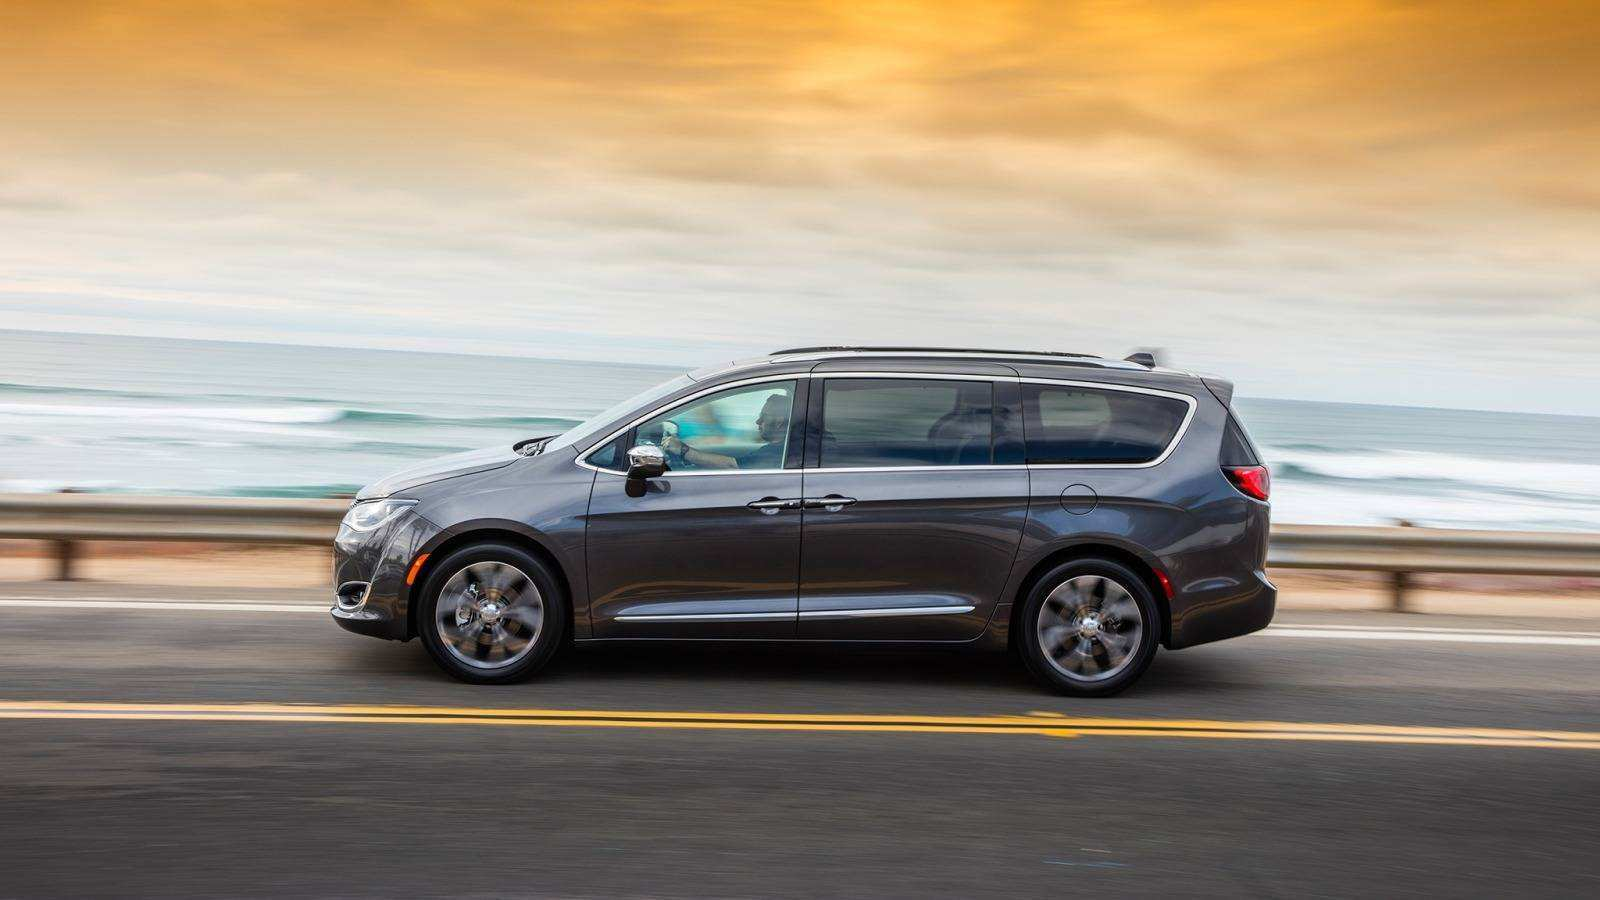 56 The Best 2019 Chrysler Pacifica Review Review And Release Date